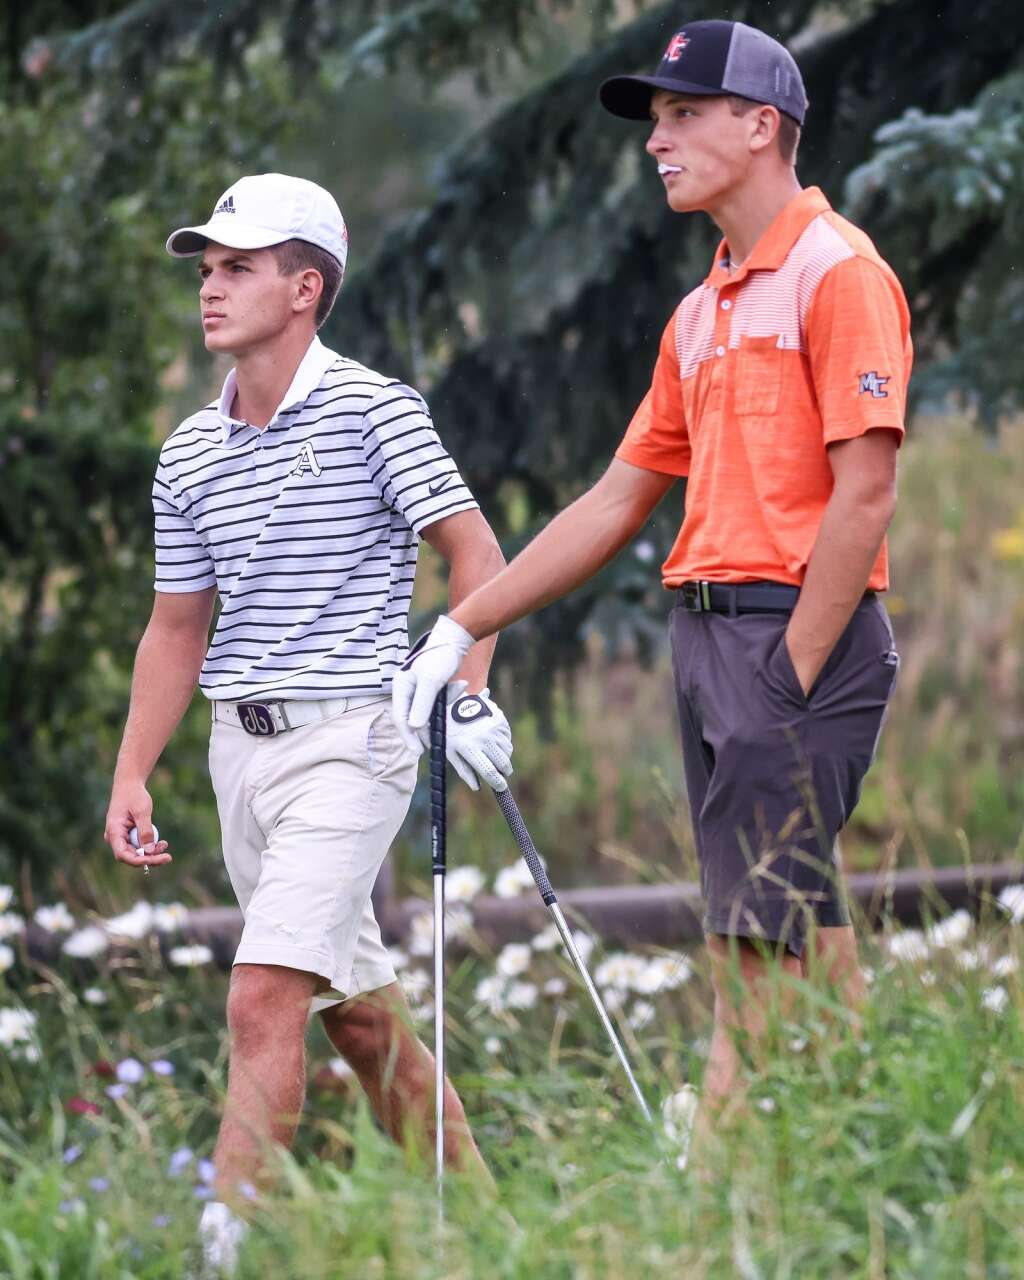 Aspen High School senior Nic Pevny, left, stands with Montezuma's Thayer Plewe as they both watch a competitor's ball during the Skiers' home golf tournament on Monday, Aug. 16, 2021, at Aspen Golf Club. Photo by Austin Colbert/The Aspen Times.